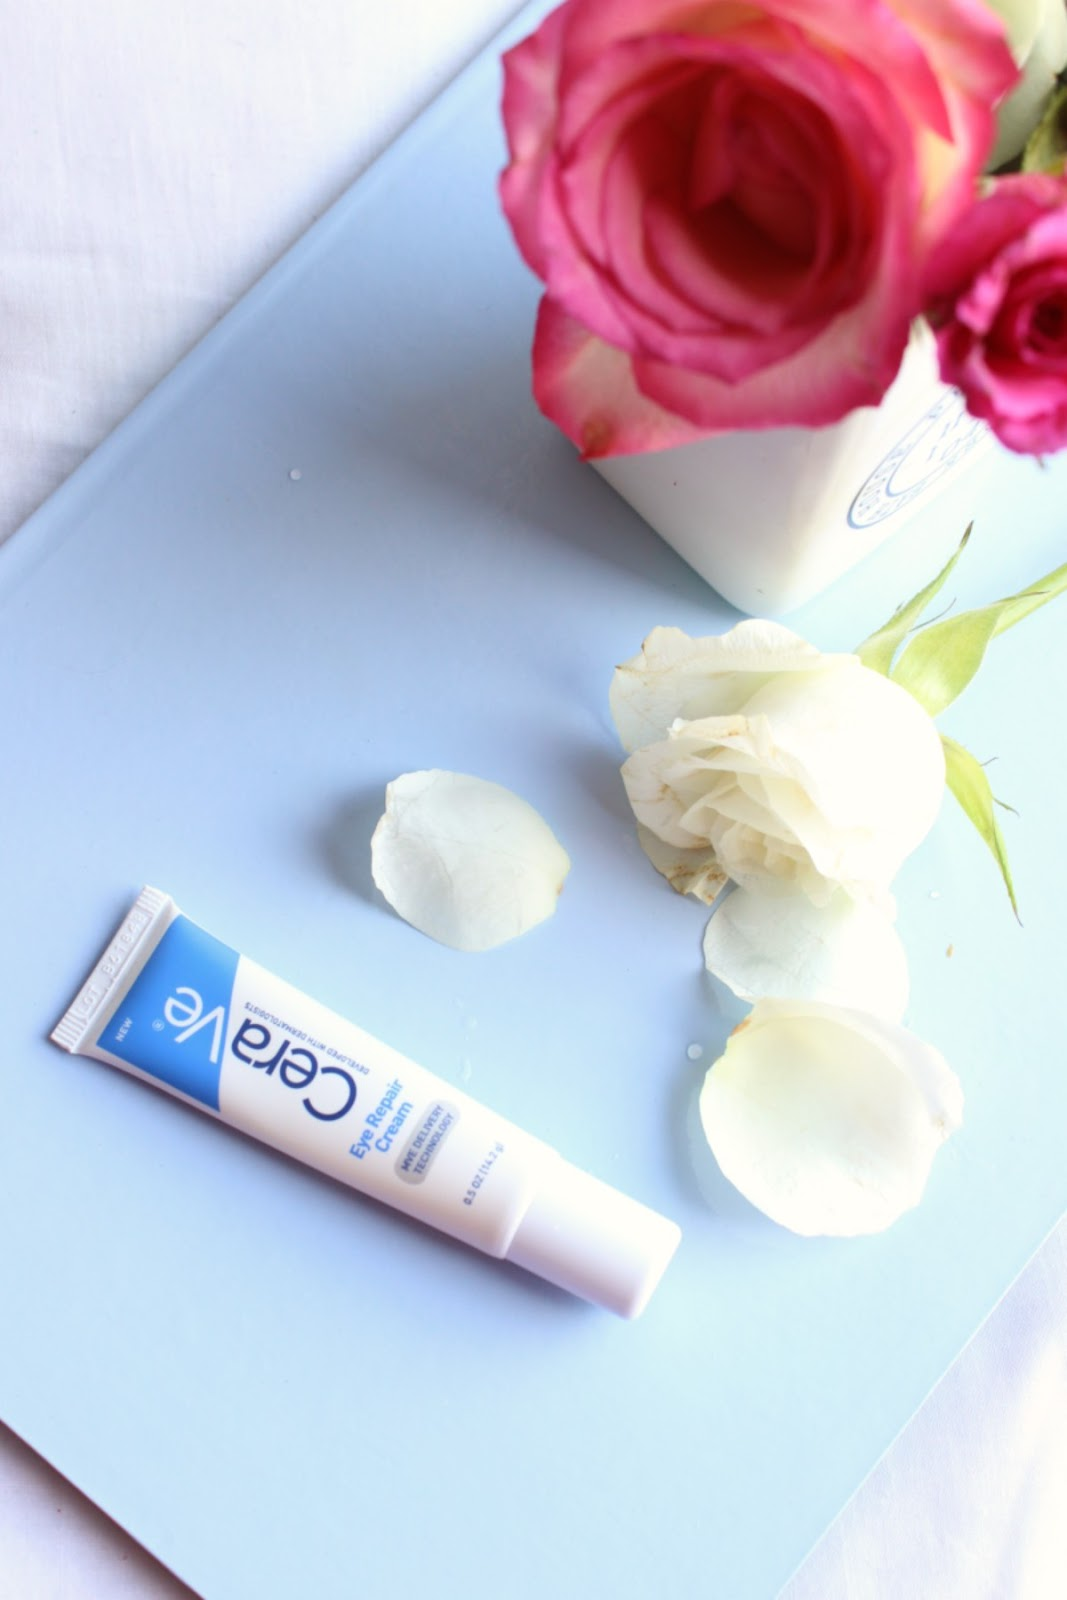 CeraVe Eye Repair Cream Review UK